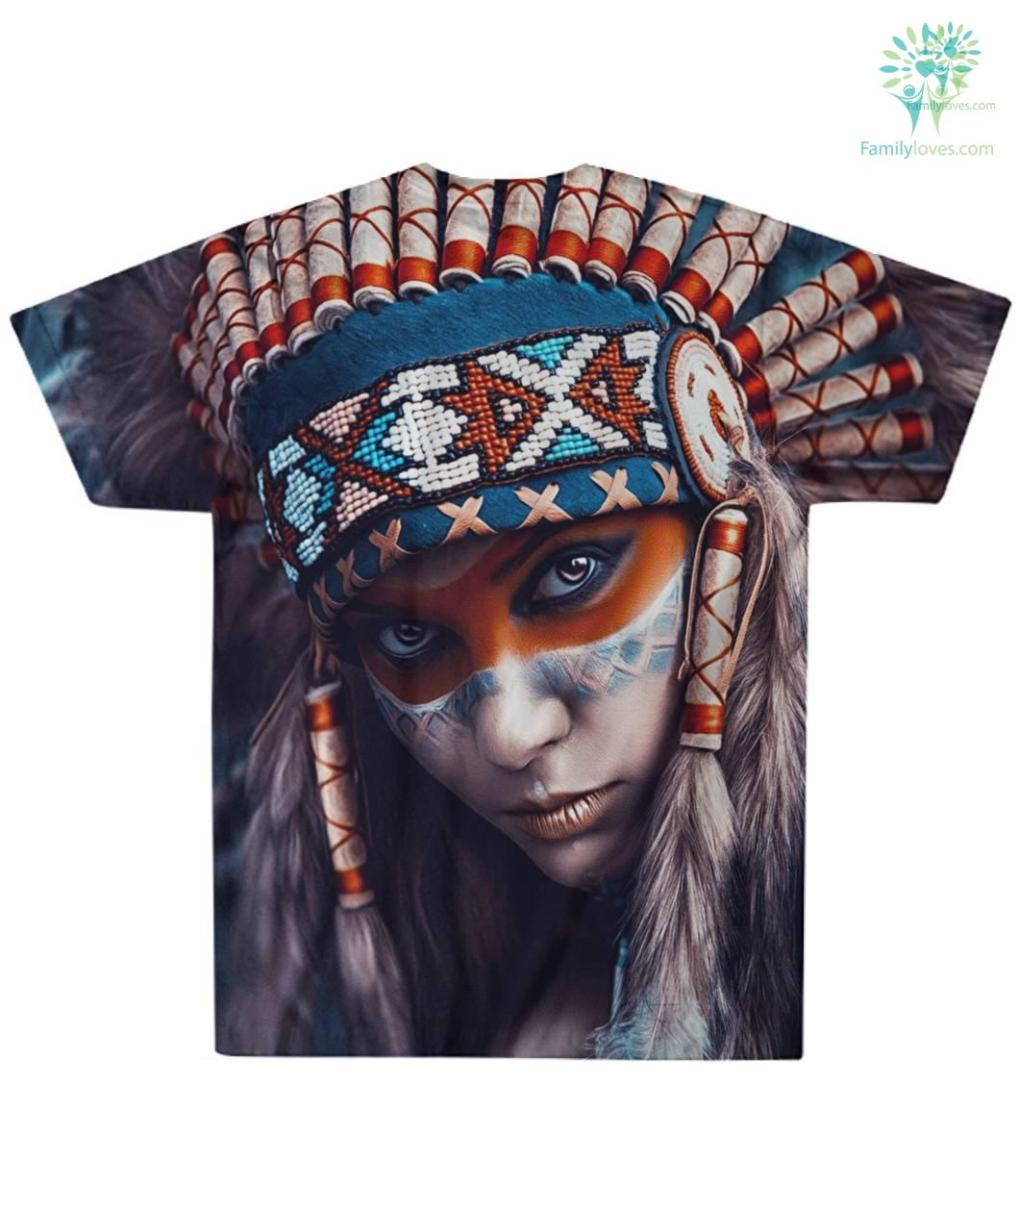 familyloves.com AMERICAN NATIVE LIMITED EDITION OVER PRINT T-SHIRT %tag